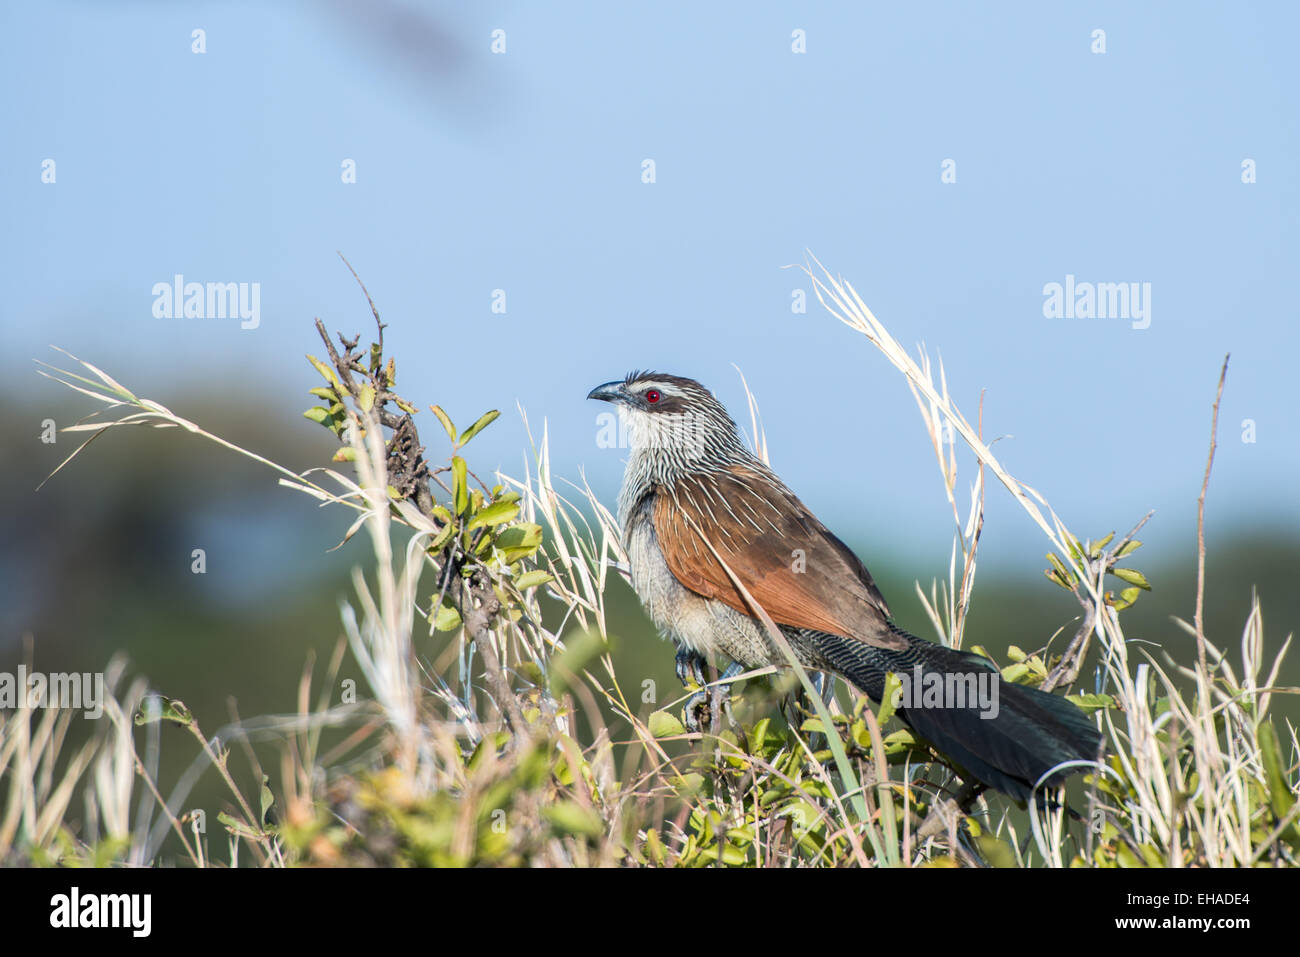 Serengeti NP, White-Browed Coucal - Stock Image